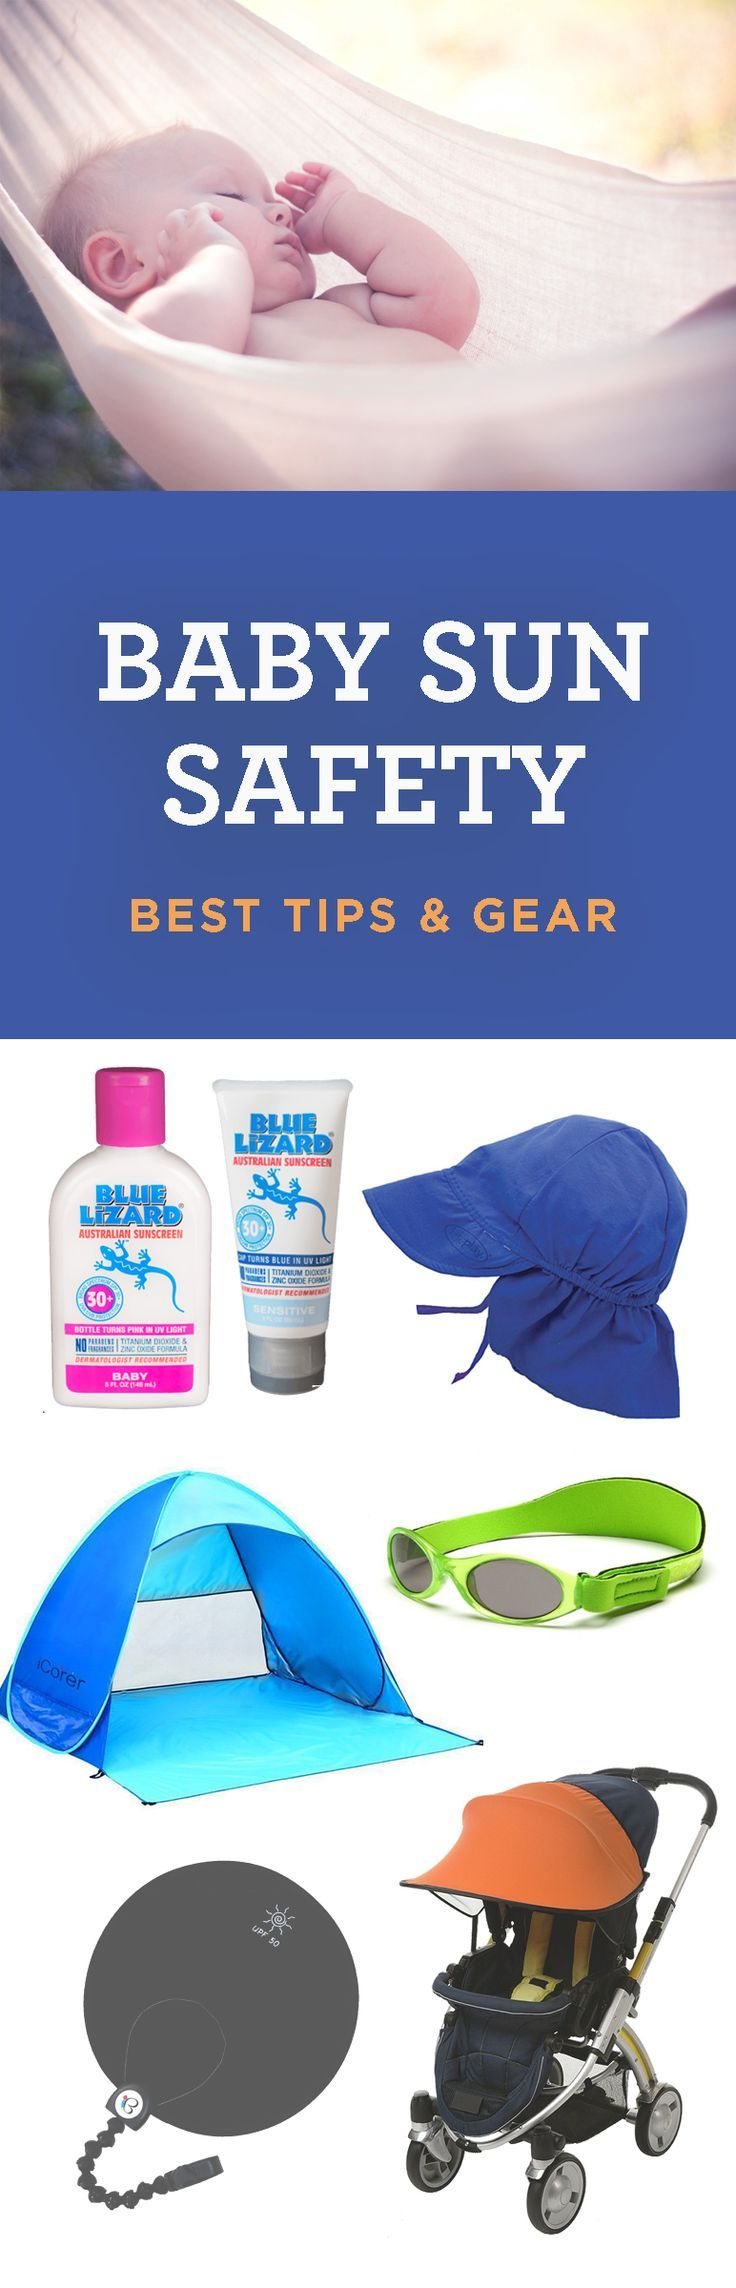 Who better than a Canadian redhead and folks with no ozone for tips on how to keep your baby safe from the sun's harmful rays?